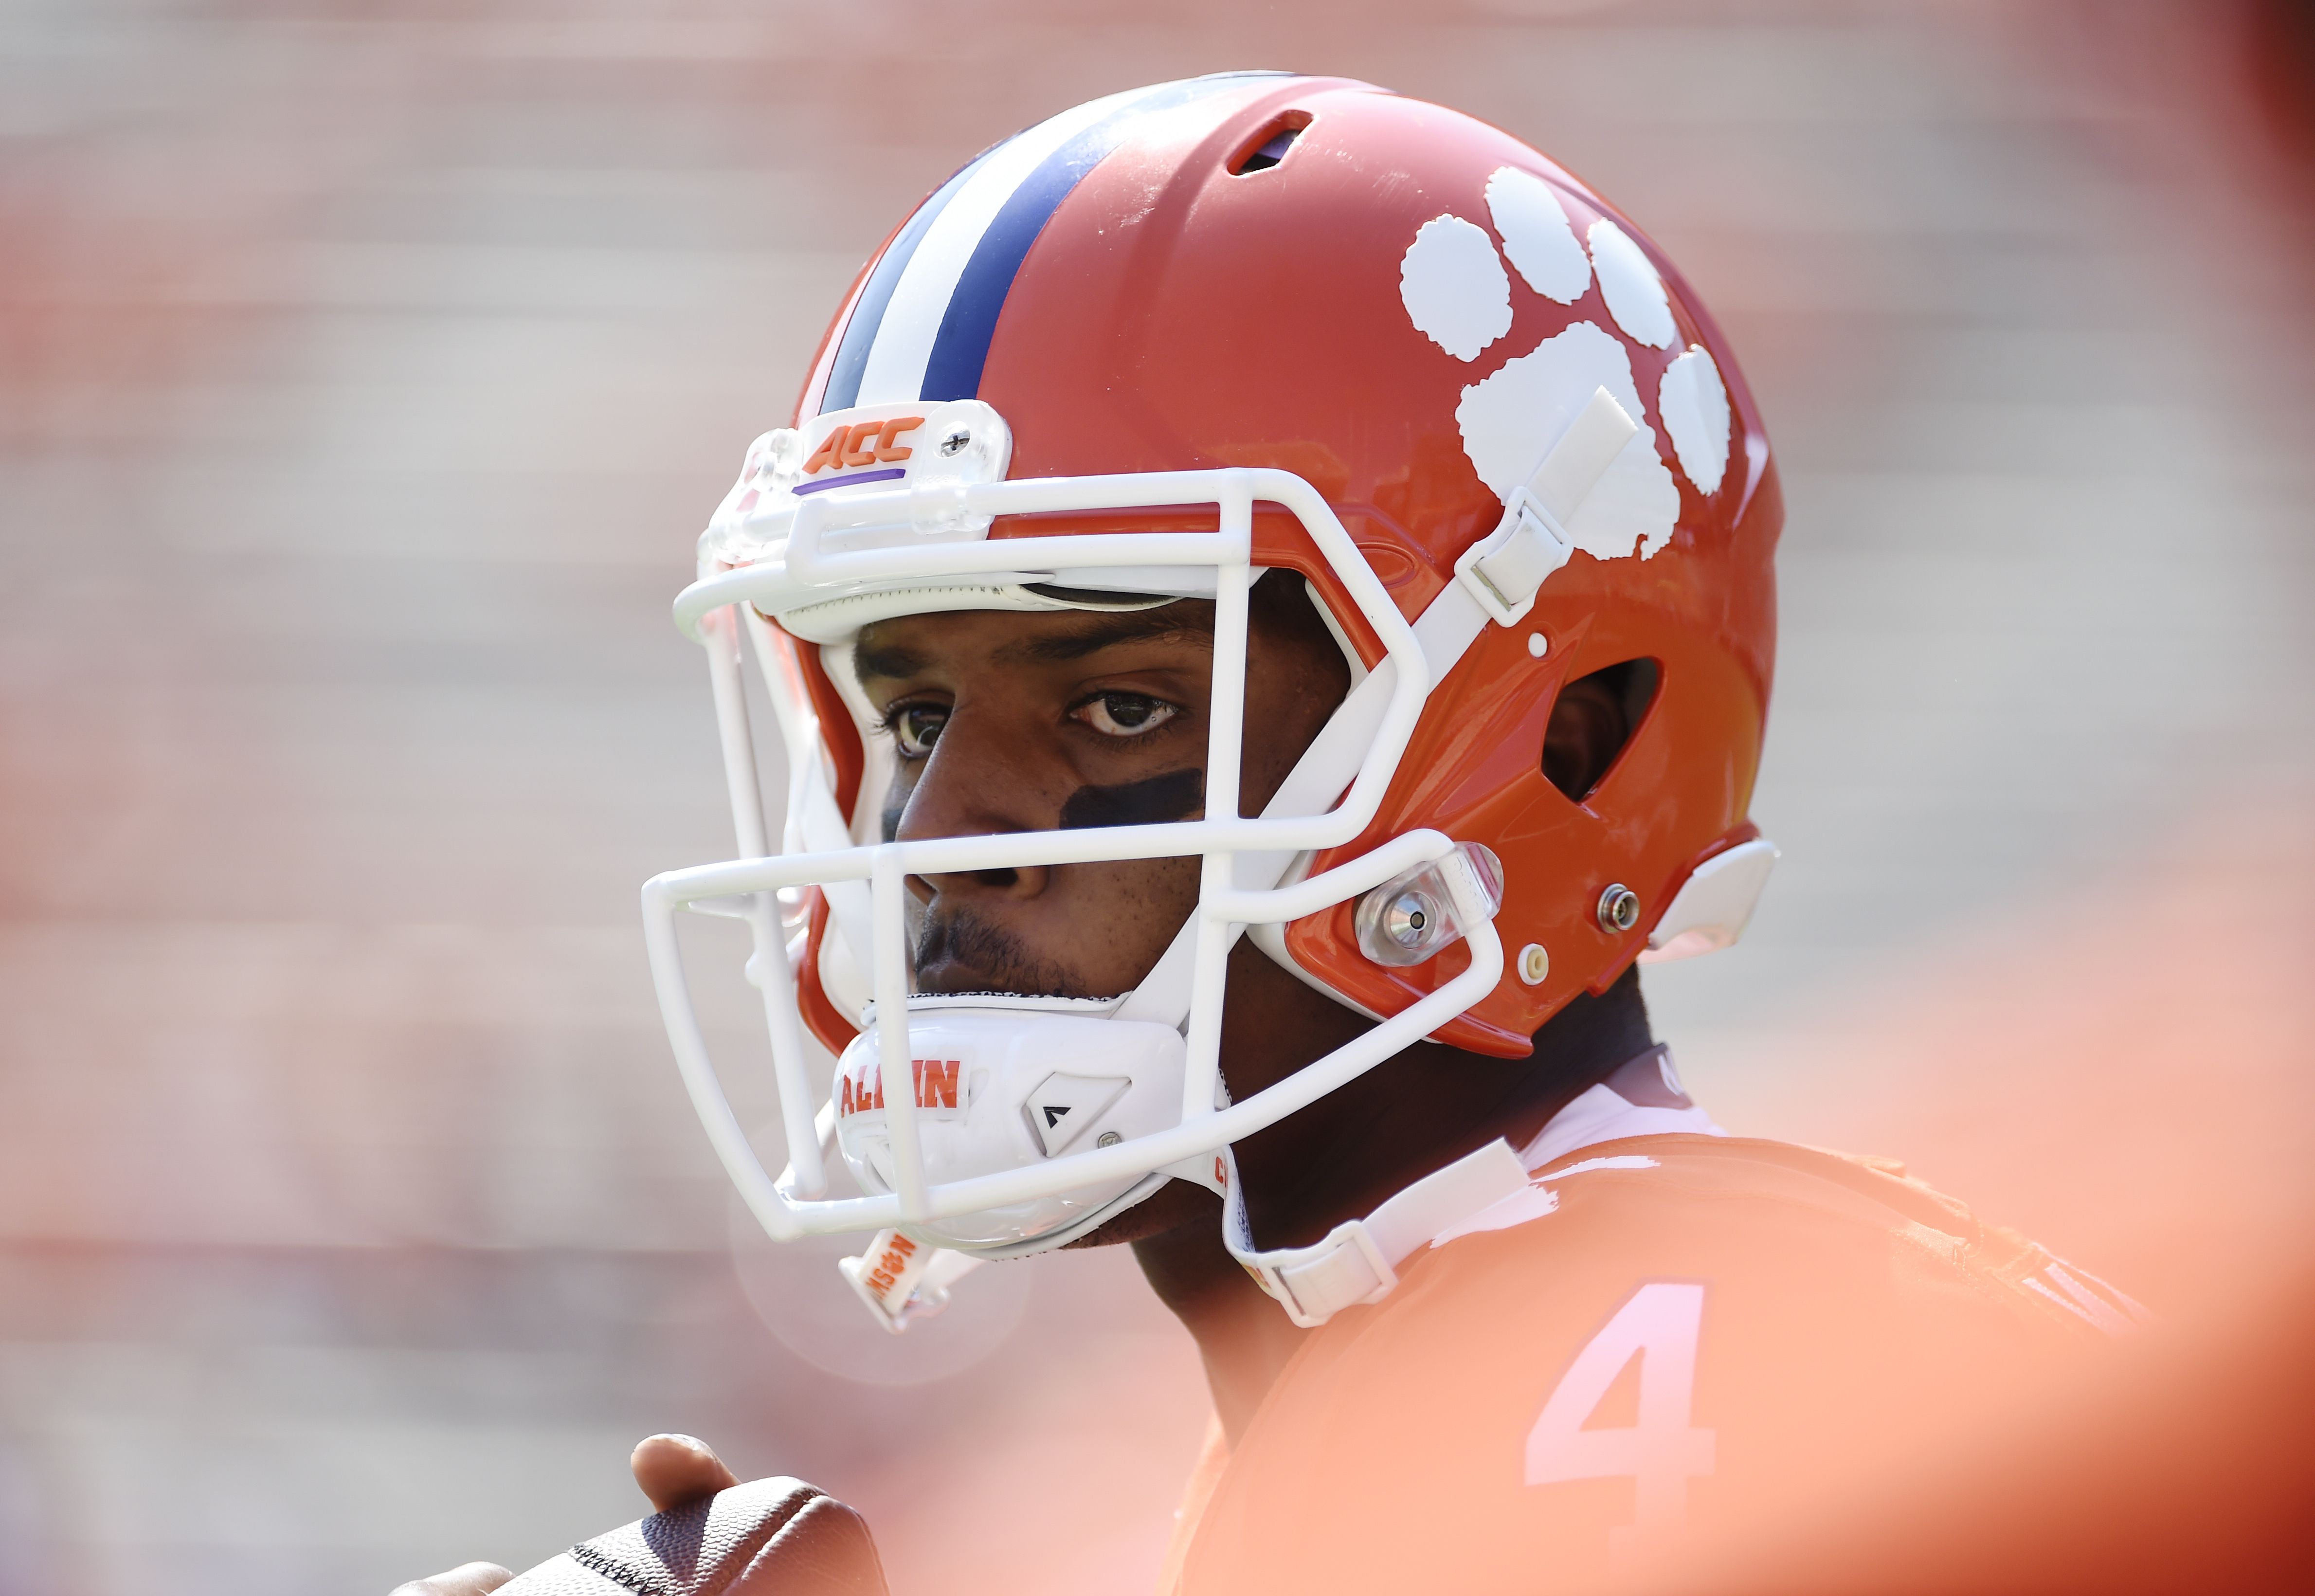 """Clemson quarterback Deshaun Watson (4) warms up before an NCAA college football game against Troy on Saturday, Sept. 10, 2016, in Clemson, S.C. Clemson quarterback Deshaun Watson has apologized to Tigers' fans for his """"negative energy"""" that he believes ha"""